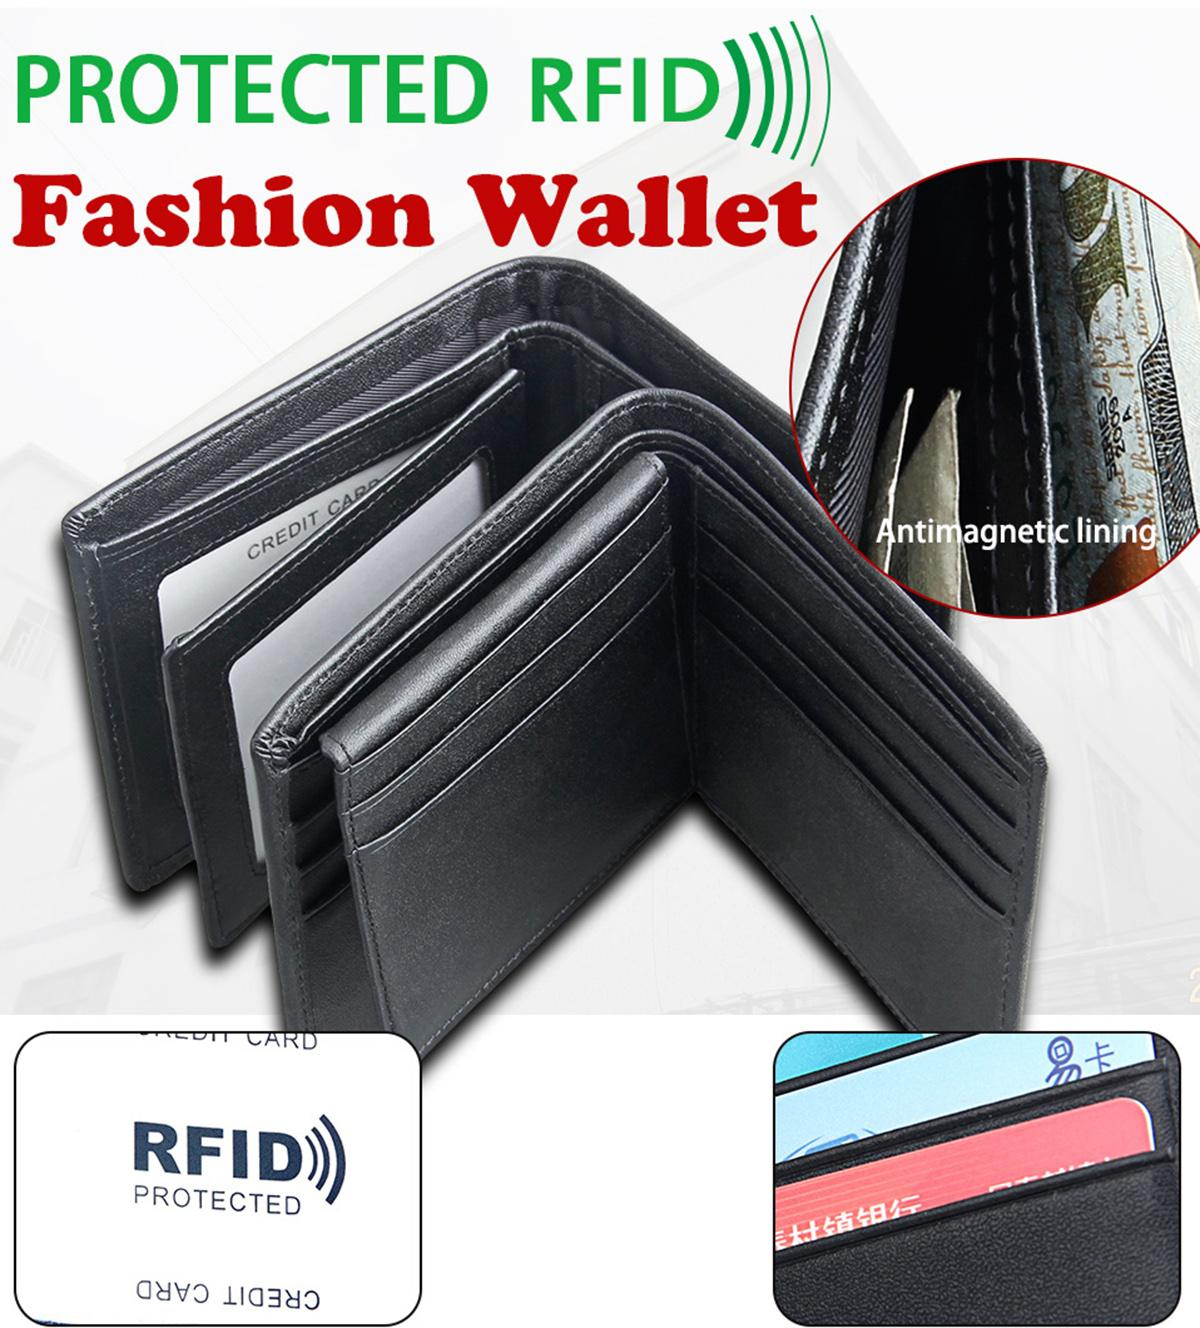 Genuine Leather Fold Over Purses Women Men Short Cow Leather Wallets Business Card Holder RFID Blocking Banknote Pocket Organizer Bags